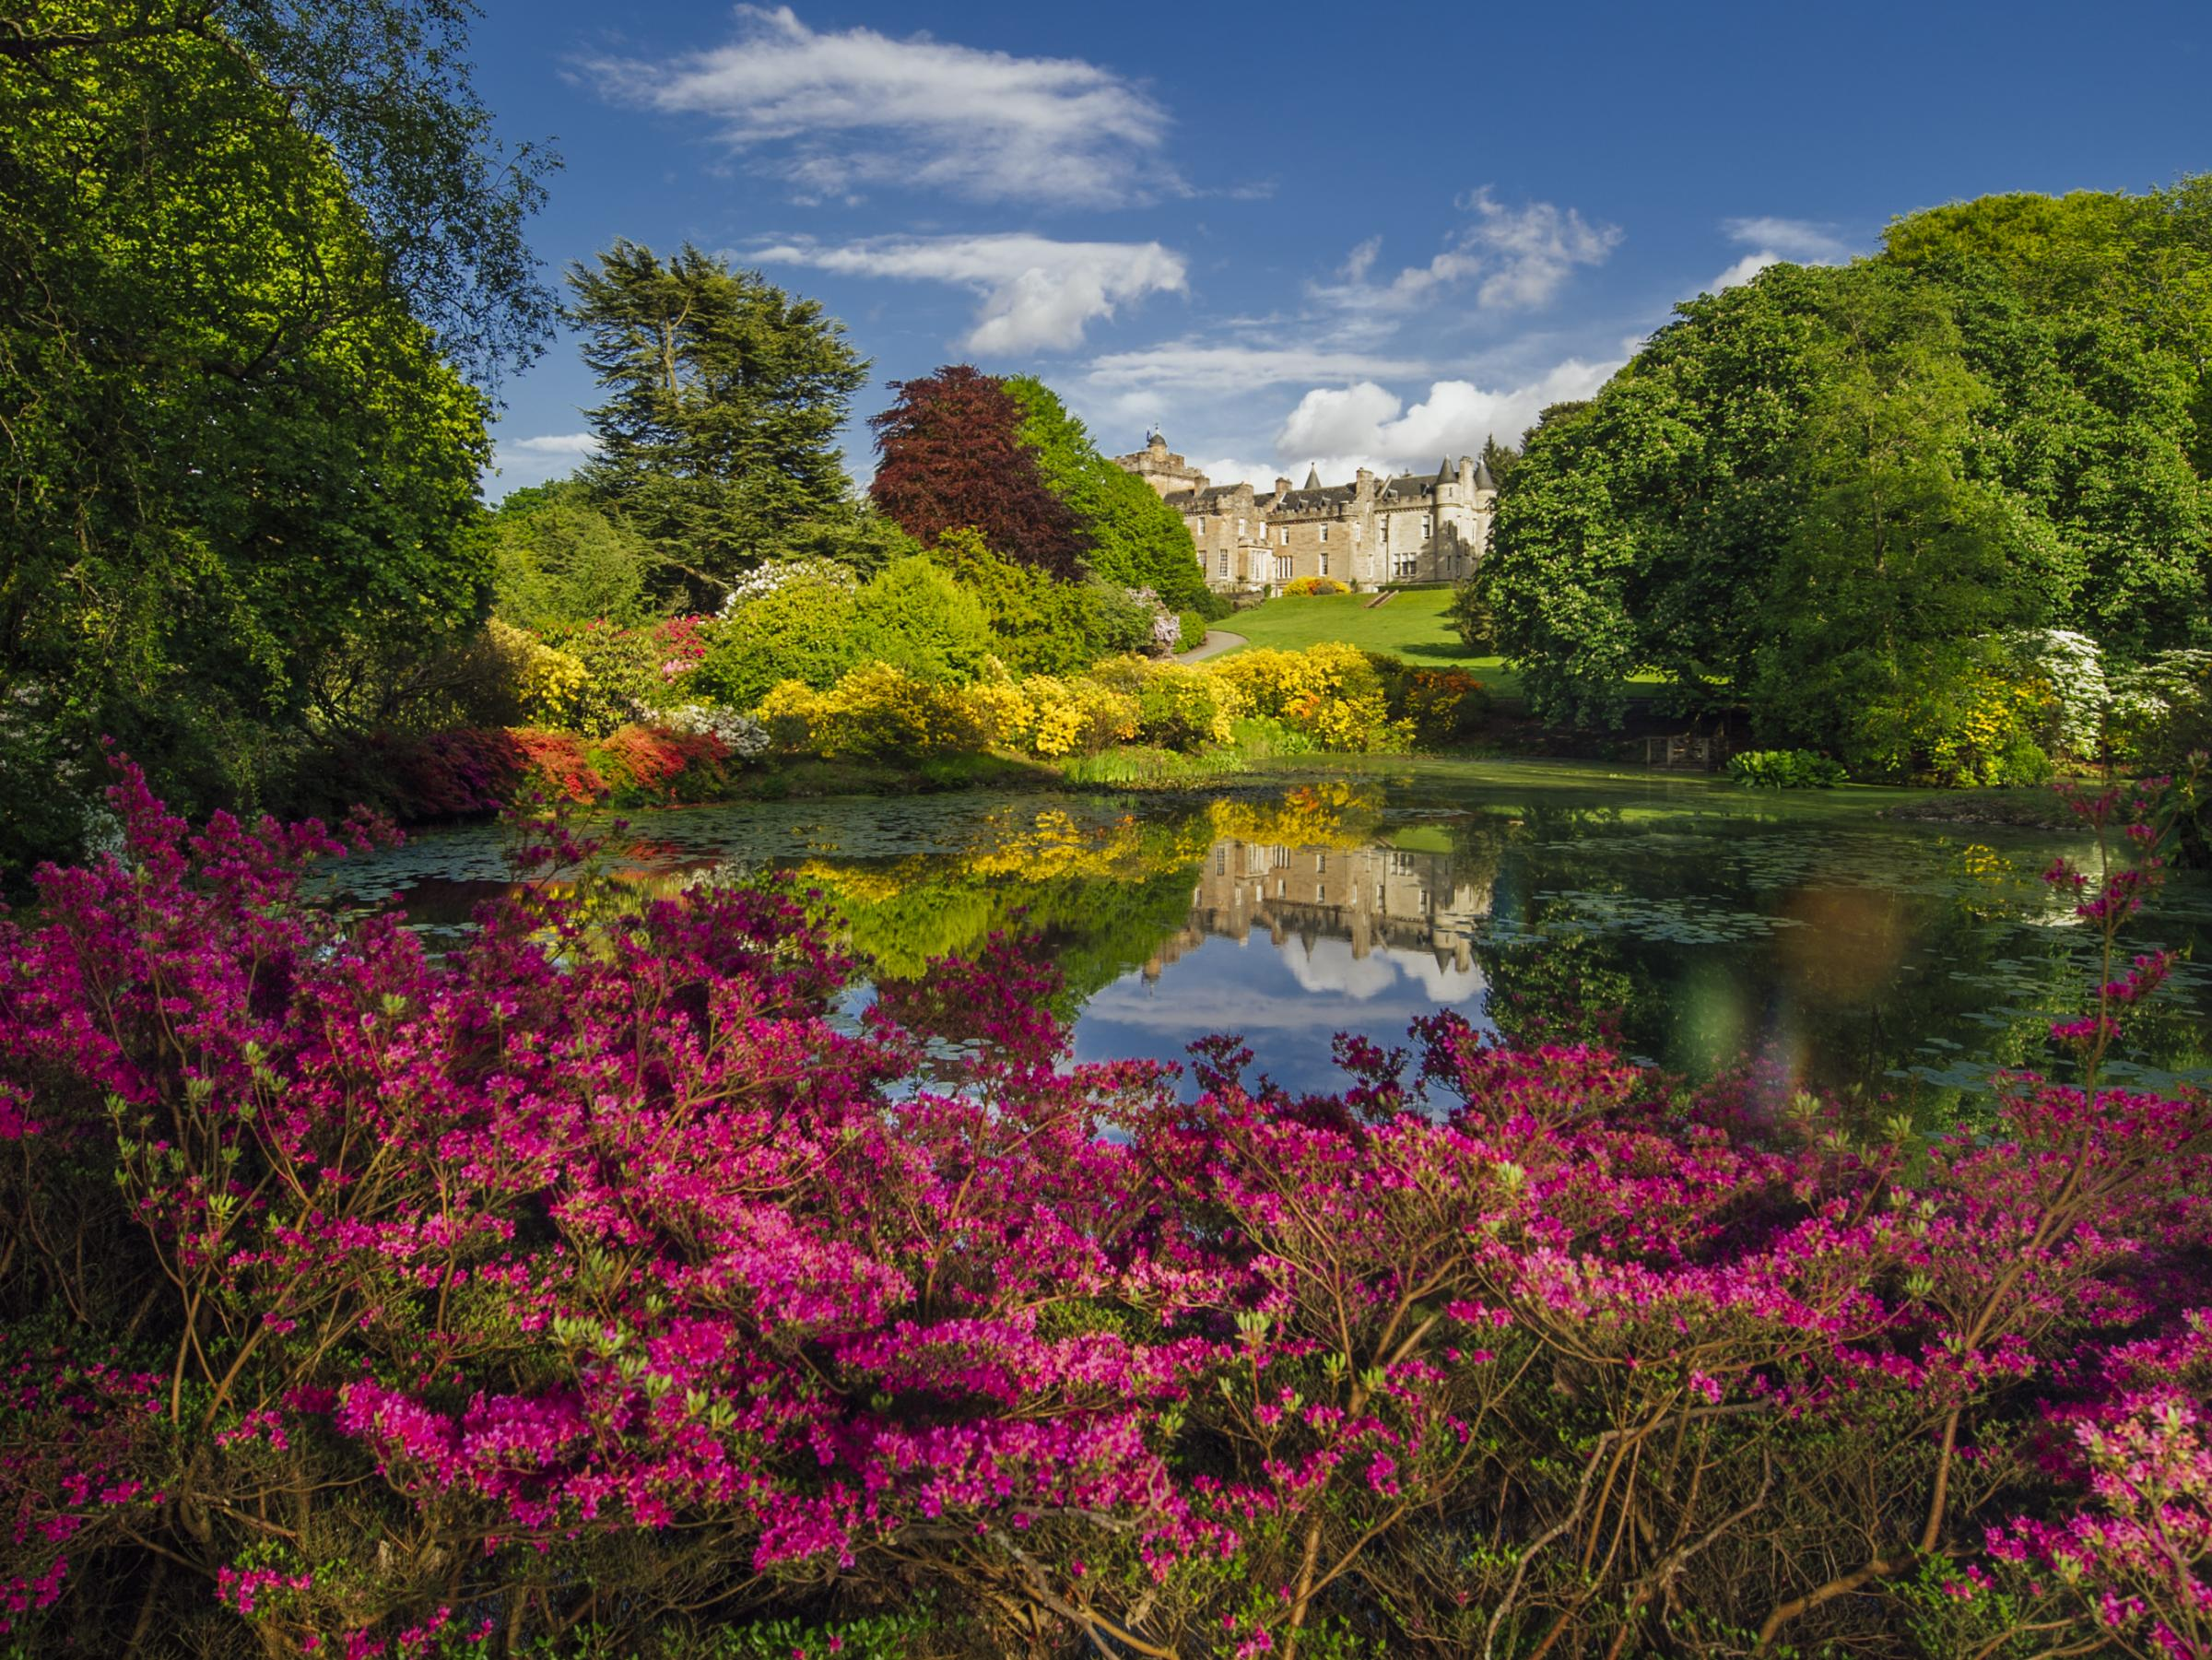 The gardens at Glenapp Castle, Ayrshire. Picrture: Paul Walker/Glenapp Castle